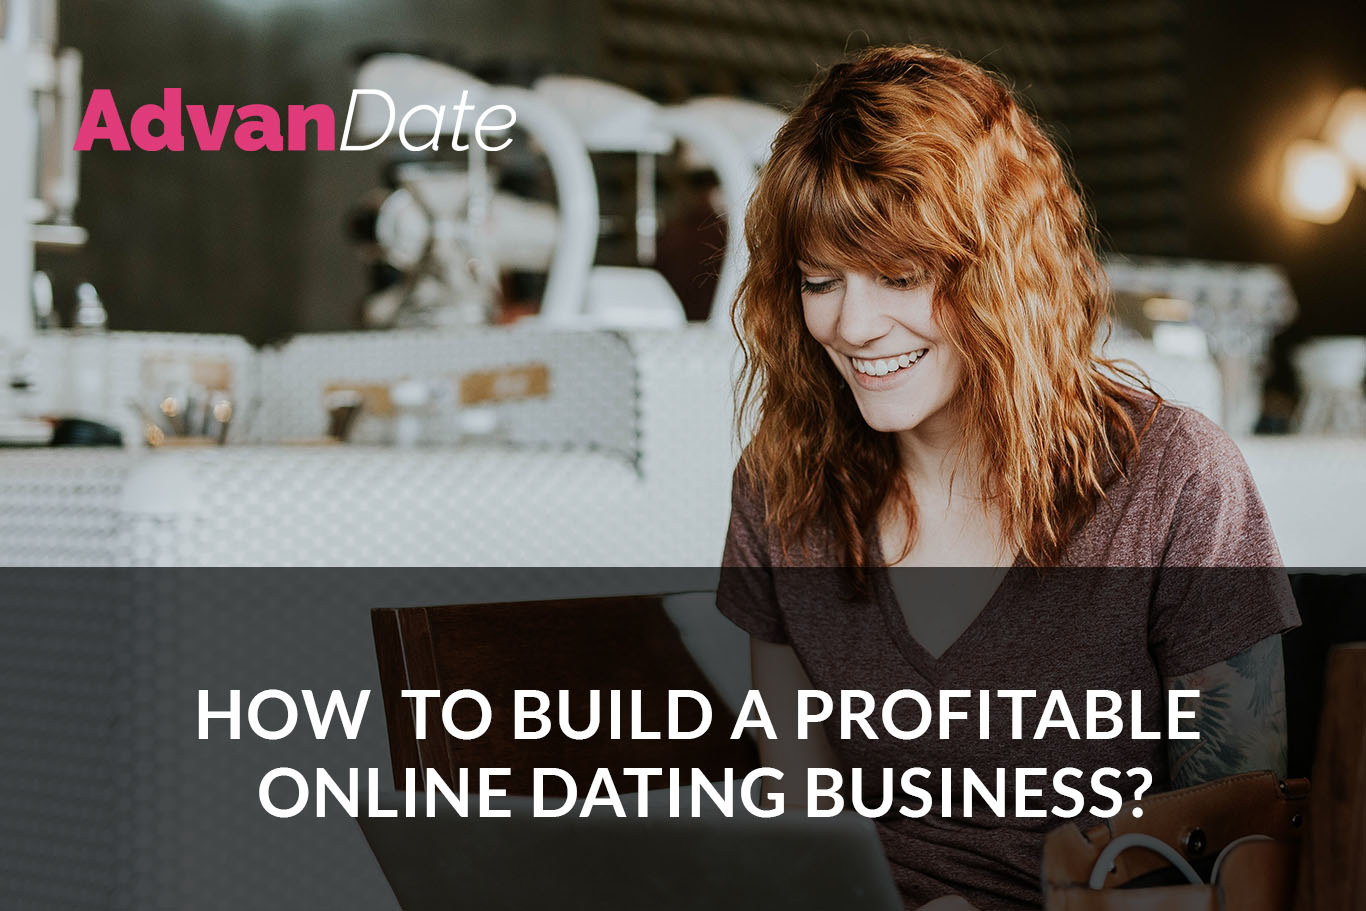 How to build a profitable online dating business?